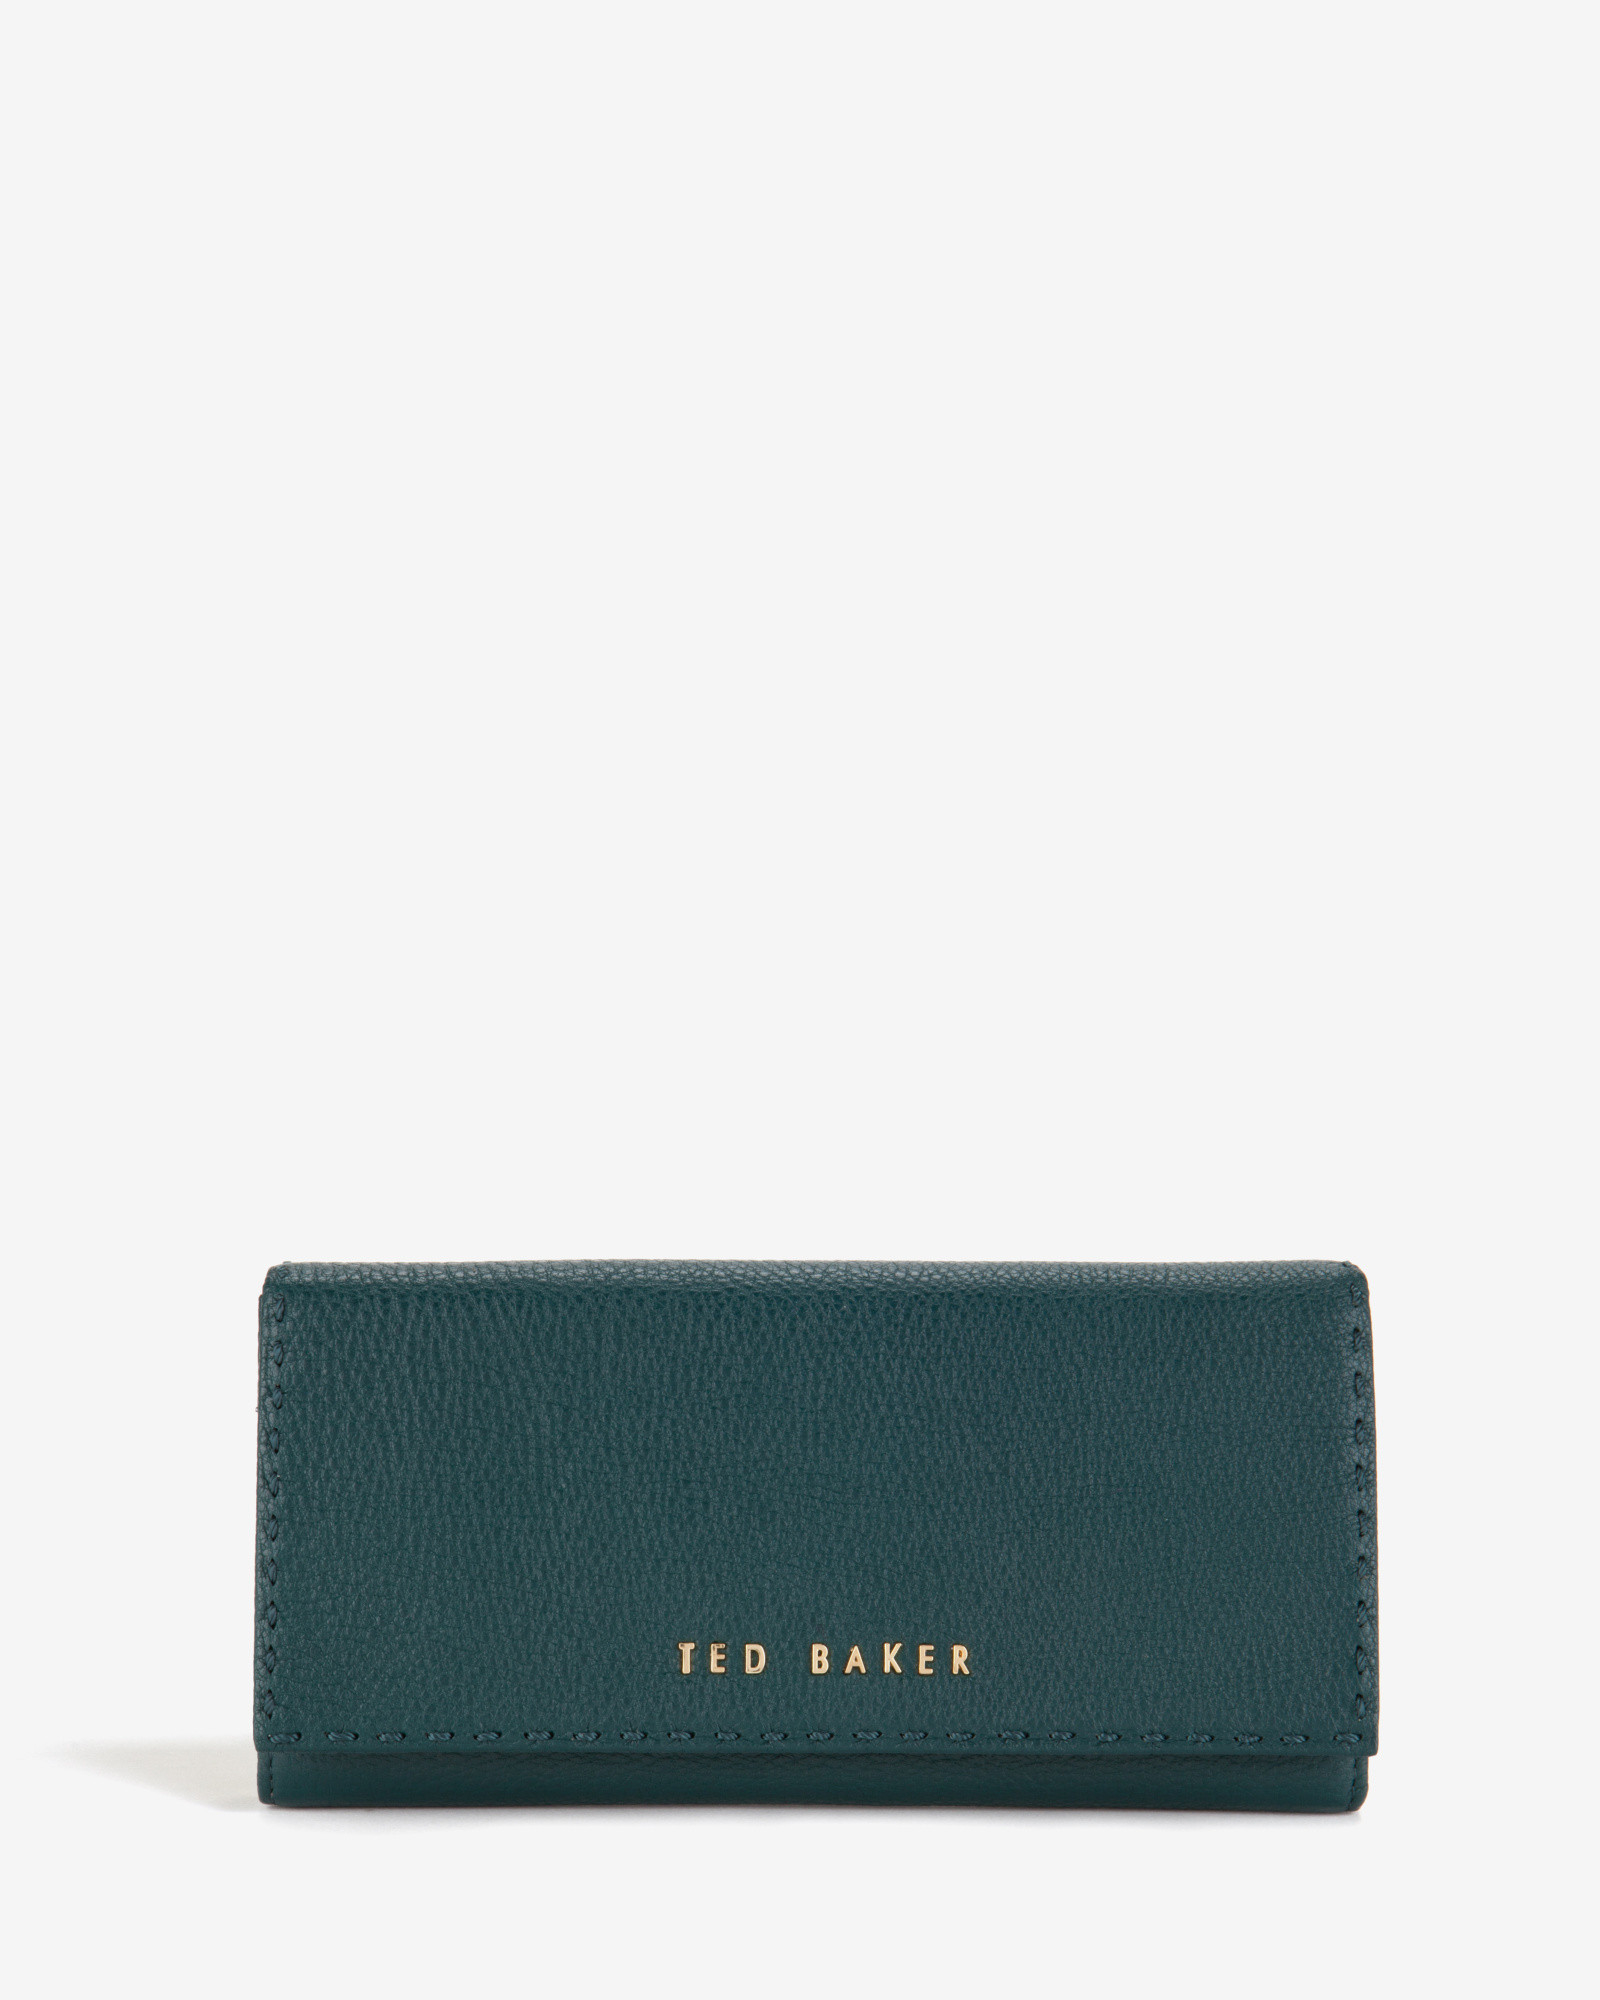 5727ce93f Ted Baker Leather Stab Stitch Matinee Purse in Green - Lyst